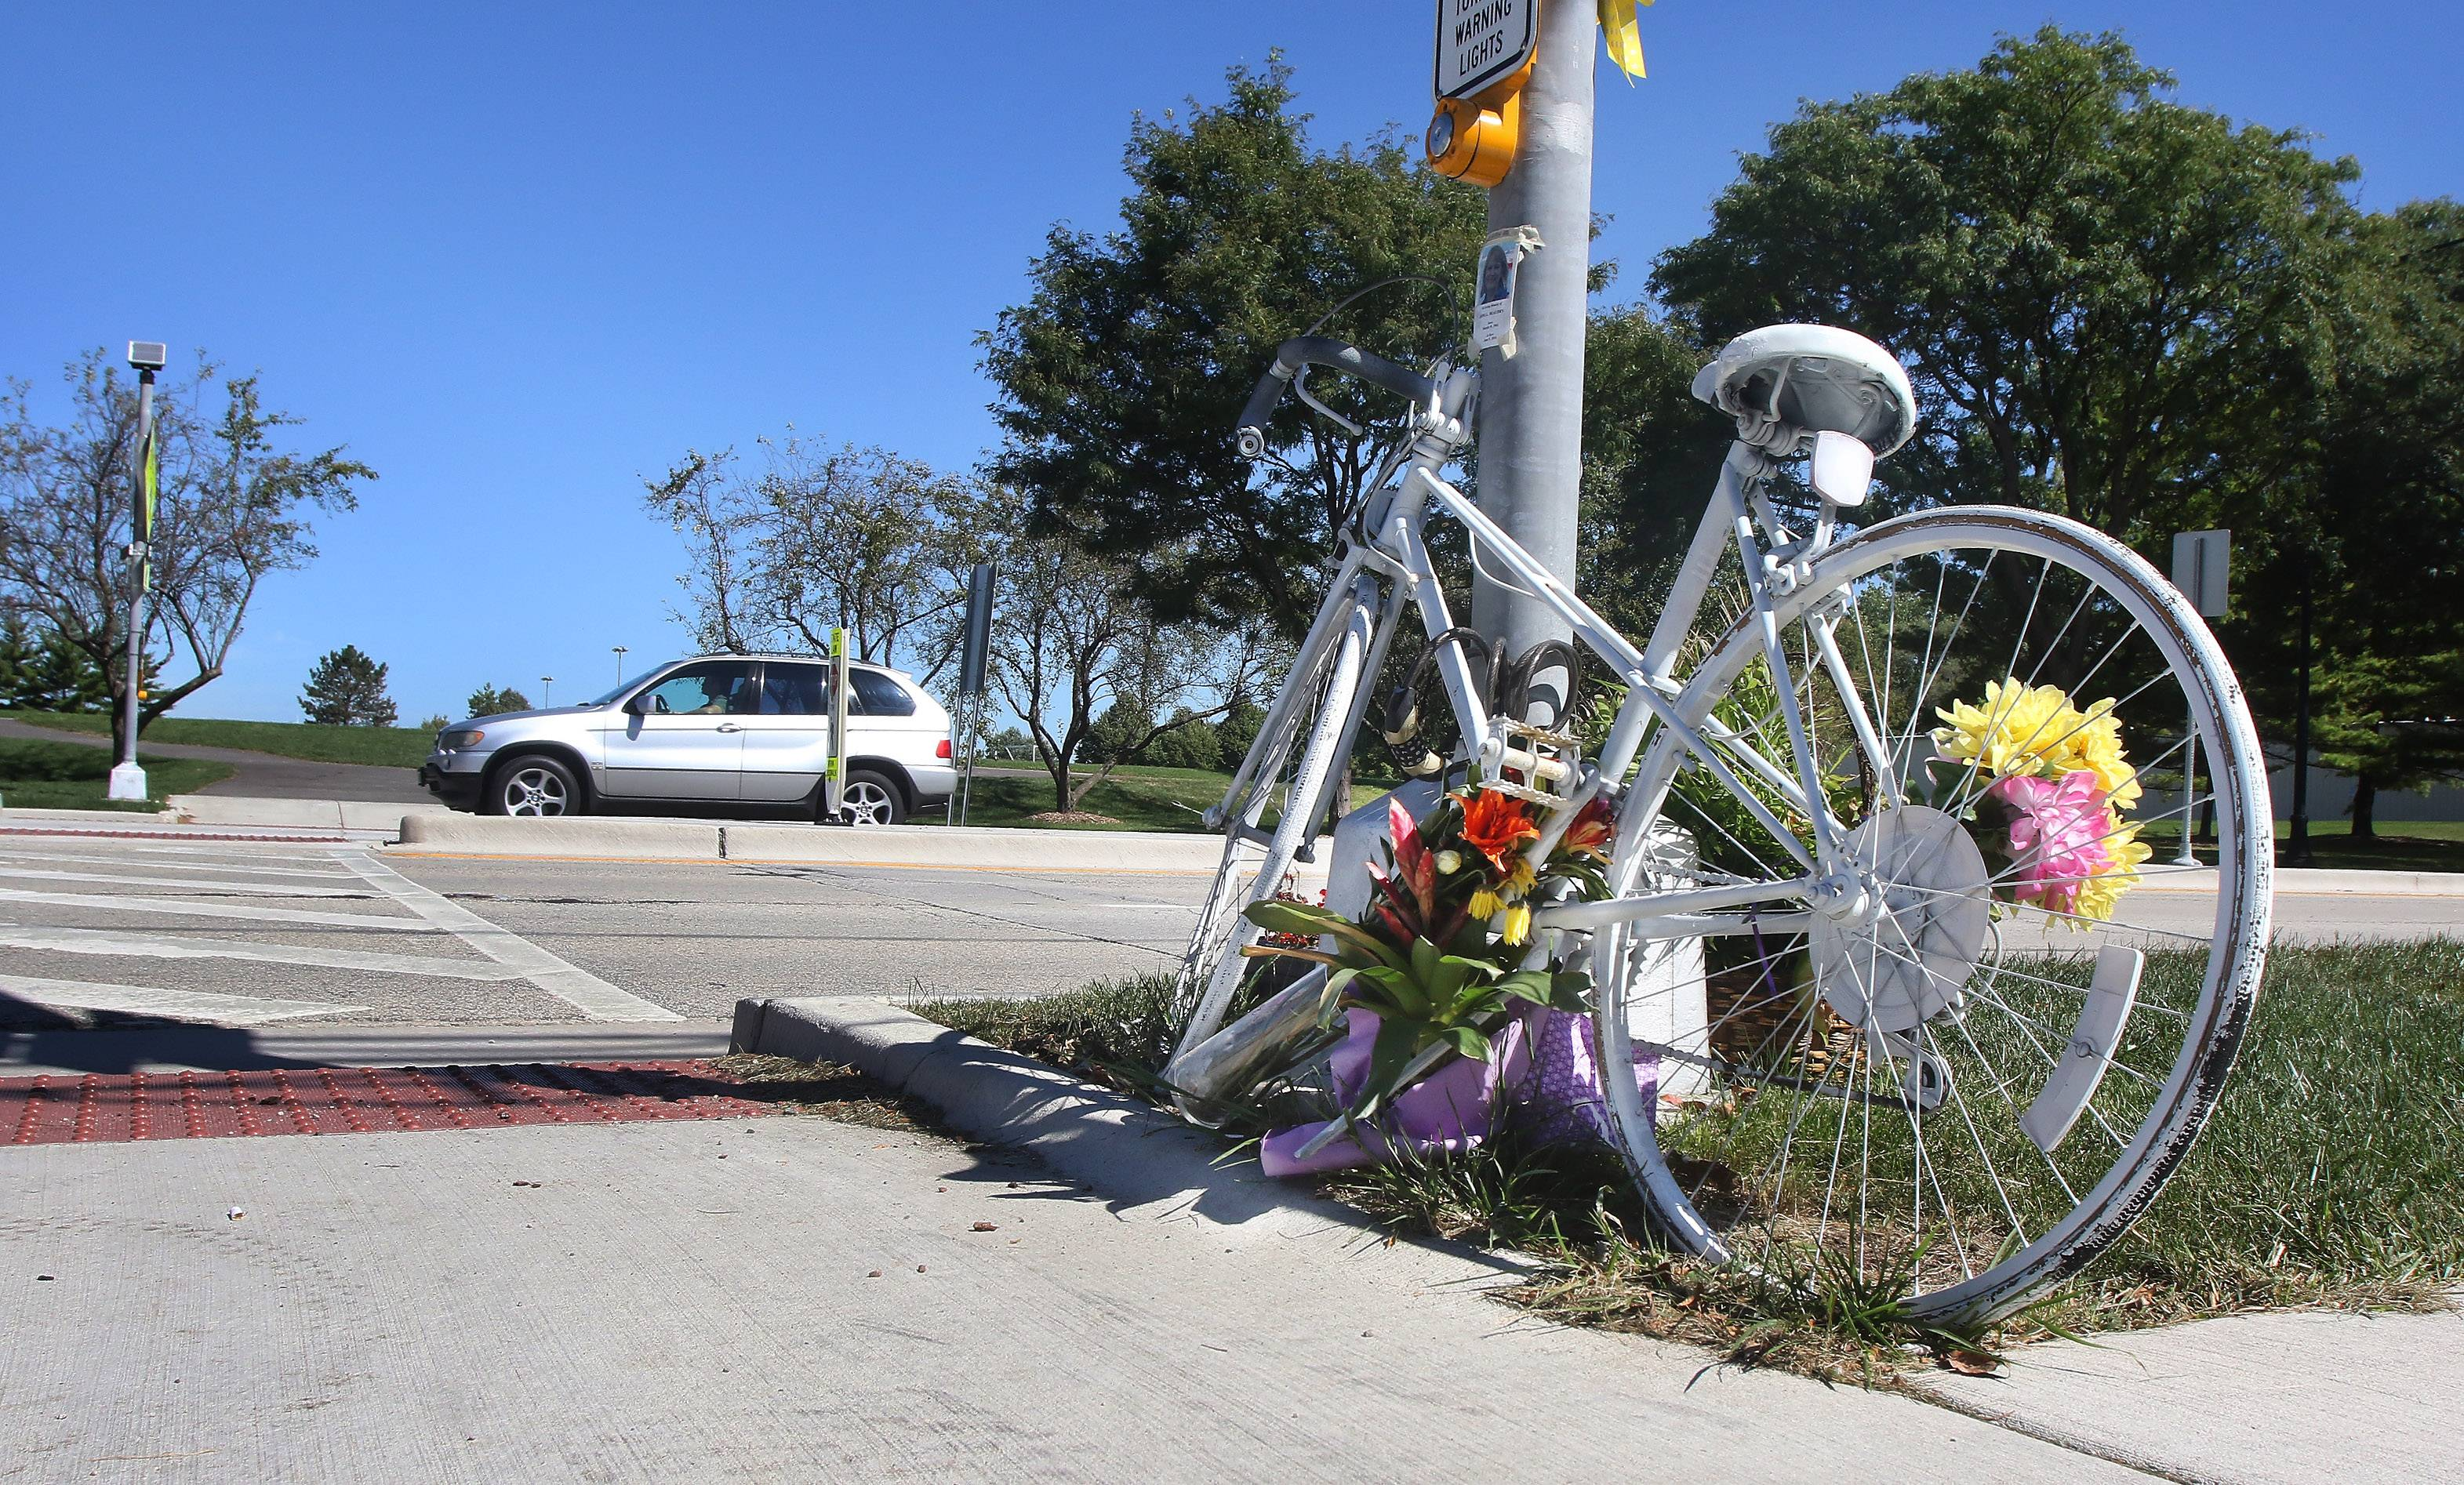 This bicycle was placed near the pedestrian crosswalk on Central Road in Mount Prospect in memorial to Joni Beaudry, who died on June 9, 2016, after she was struck in the crosswalk. Her husband questioned the design of the crosswalk and how the village responded to the accident.